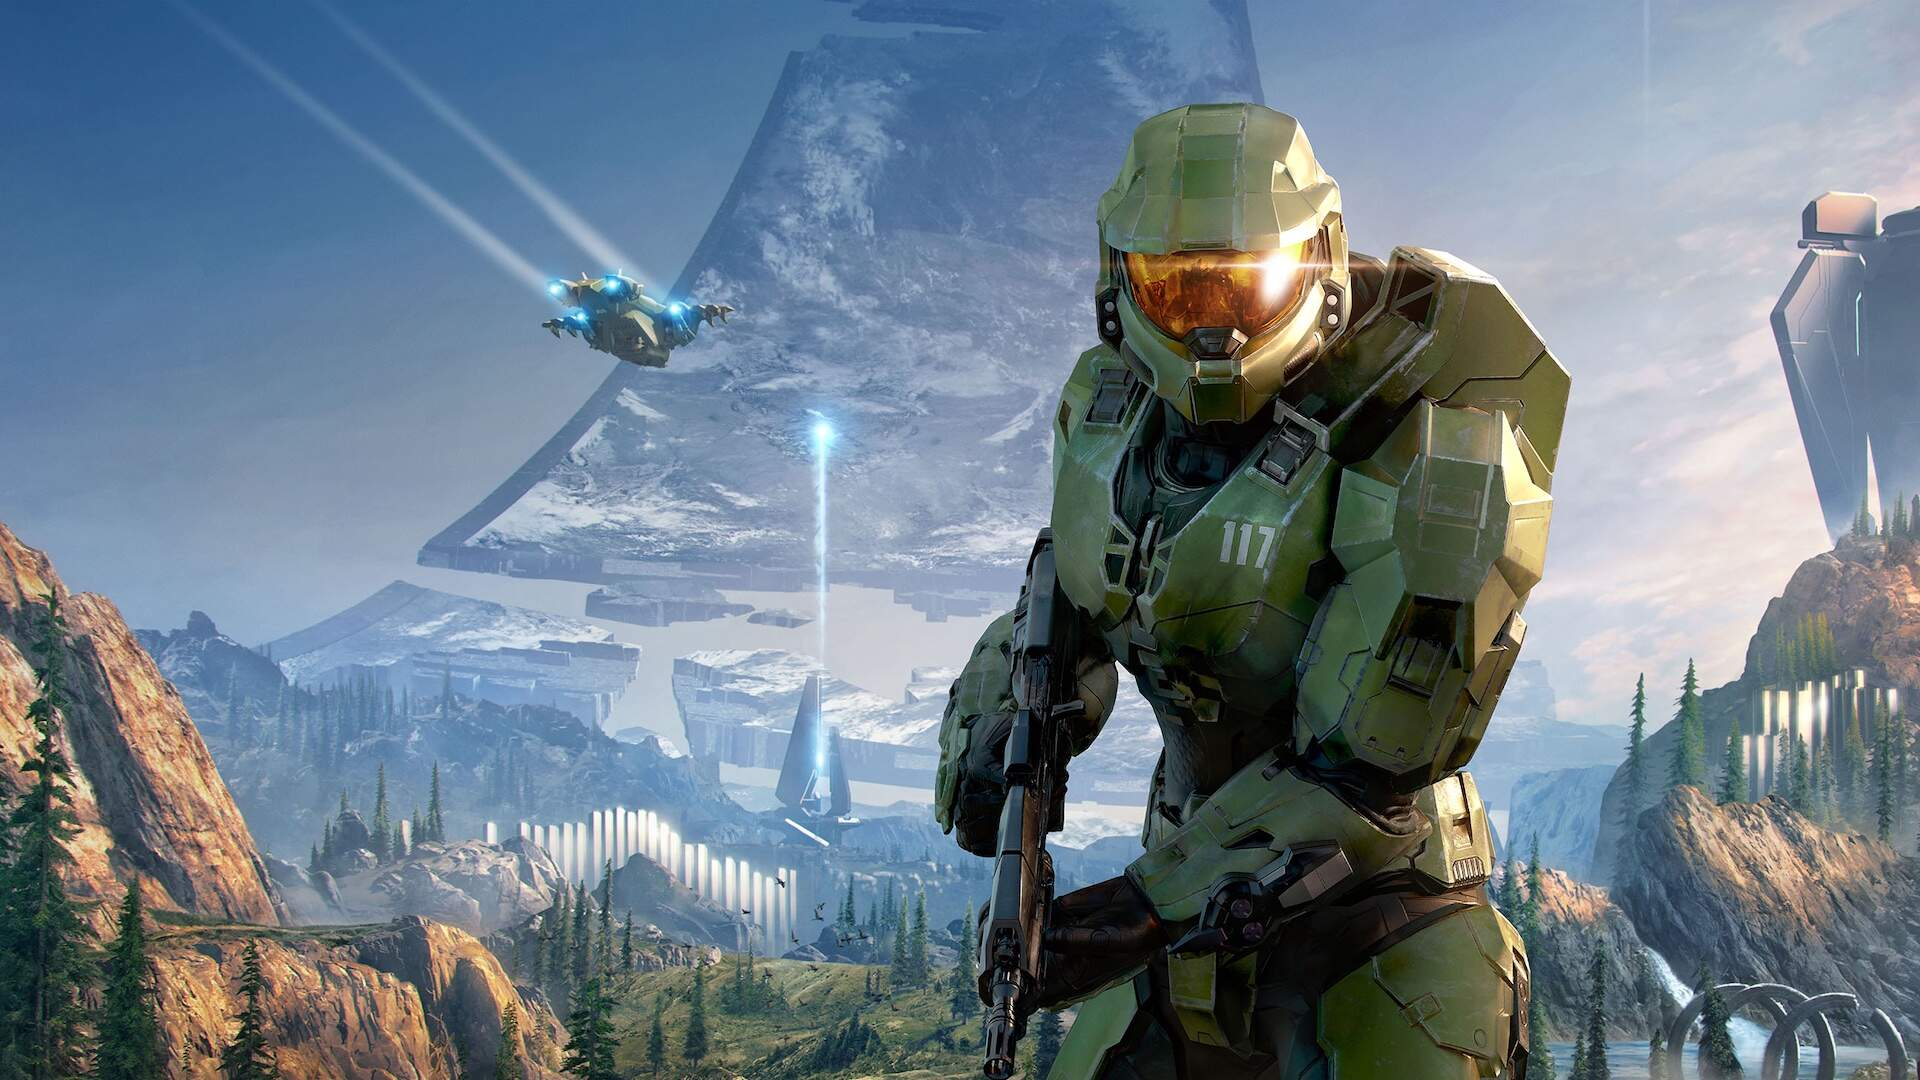 Halo Infinite's New Art Hides Some Major Details on Master Chief's Armor